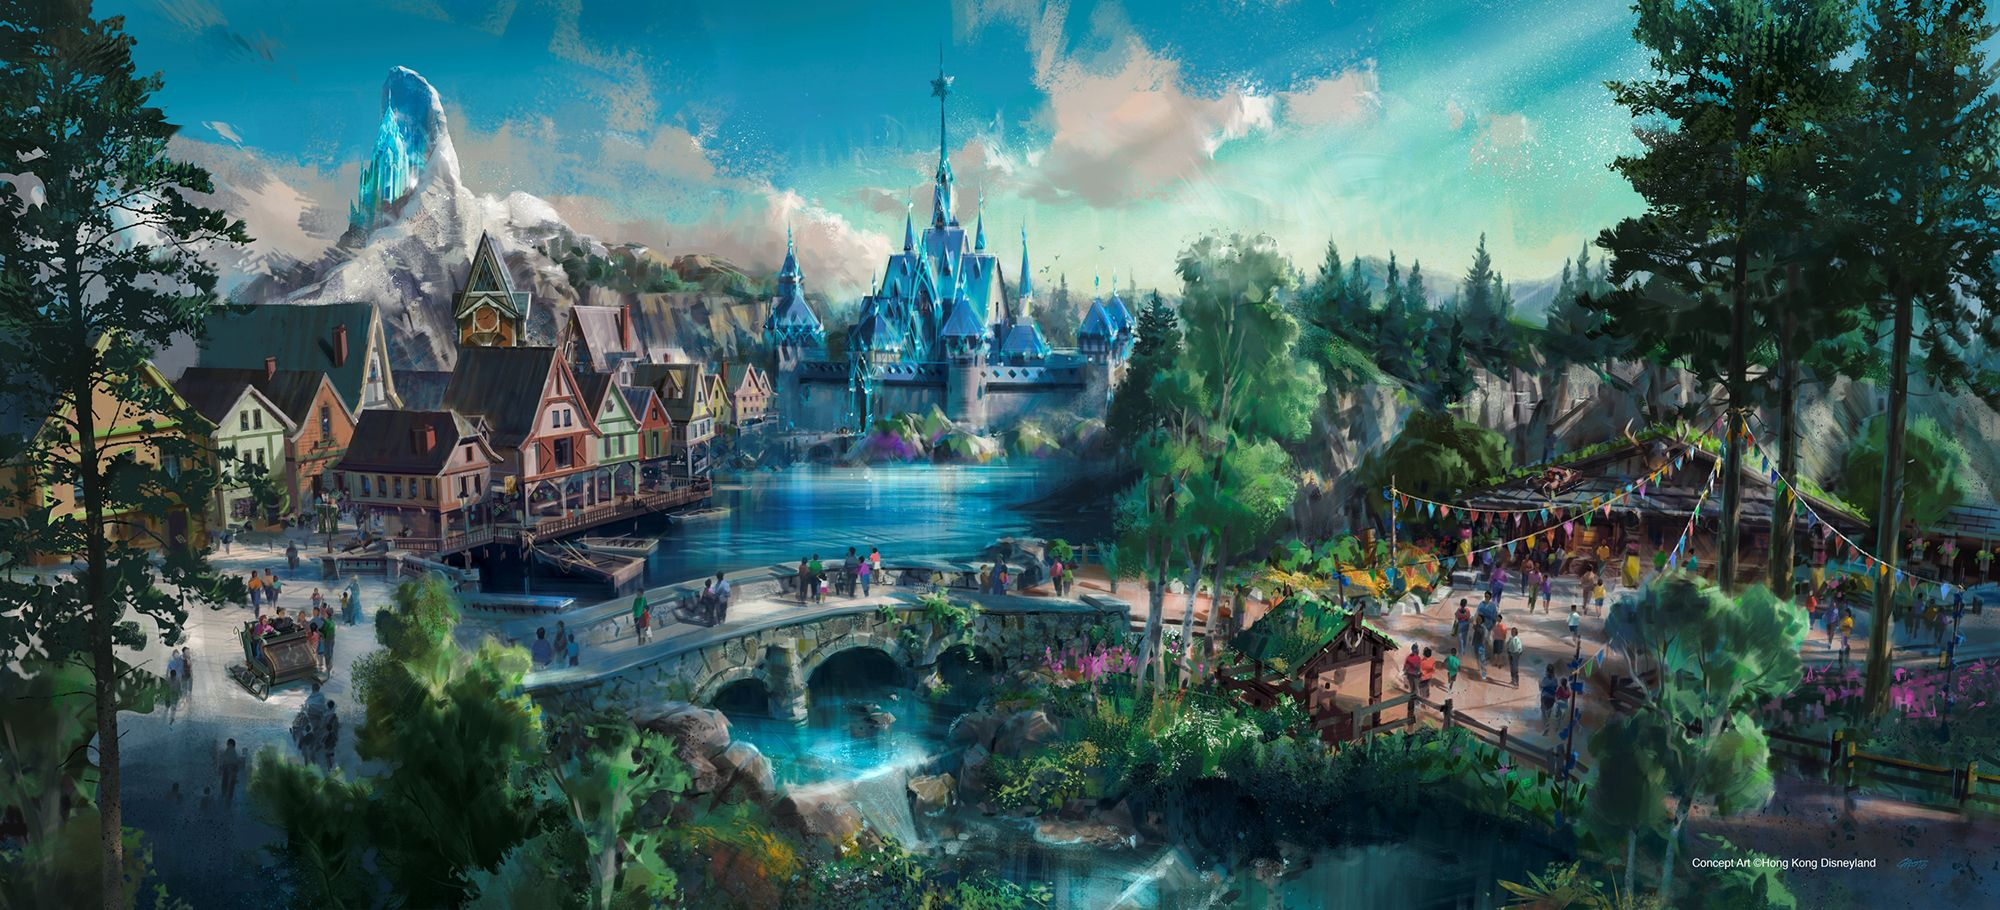 Hong Kong Disneyland Frozen zone